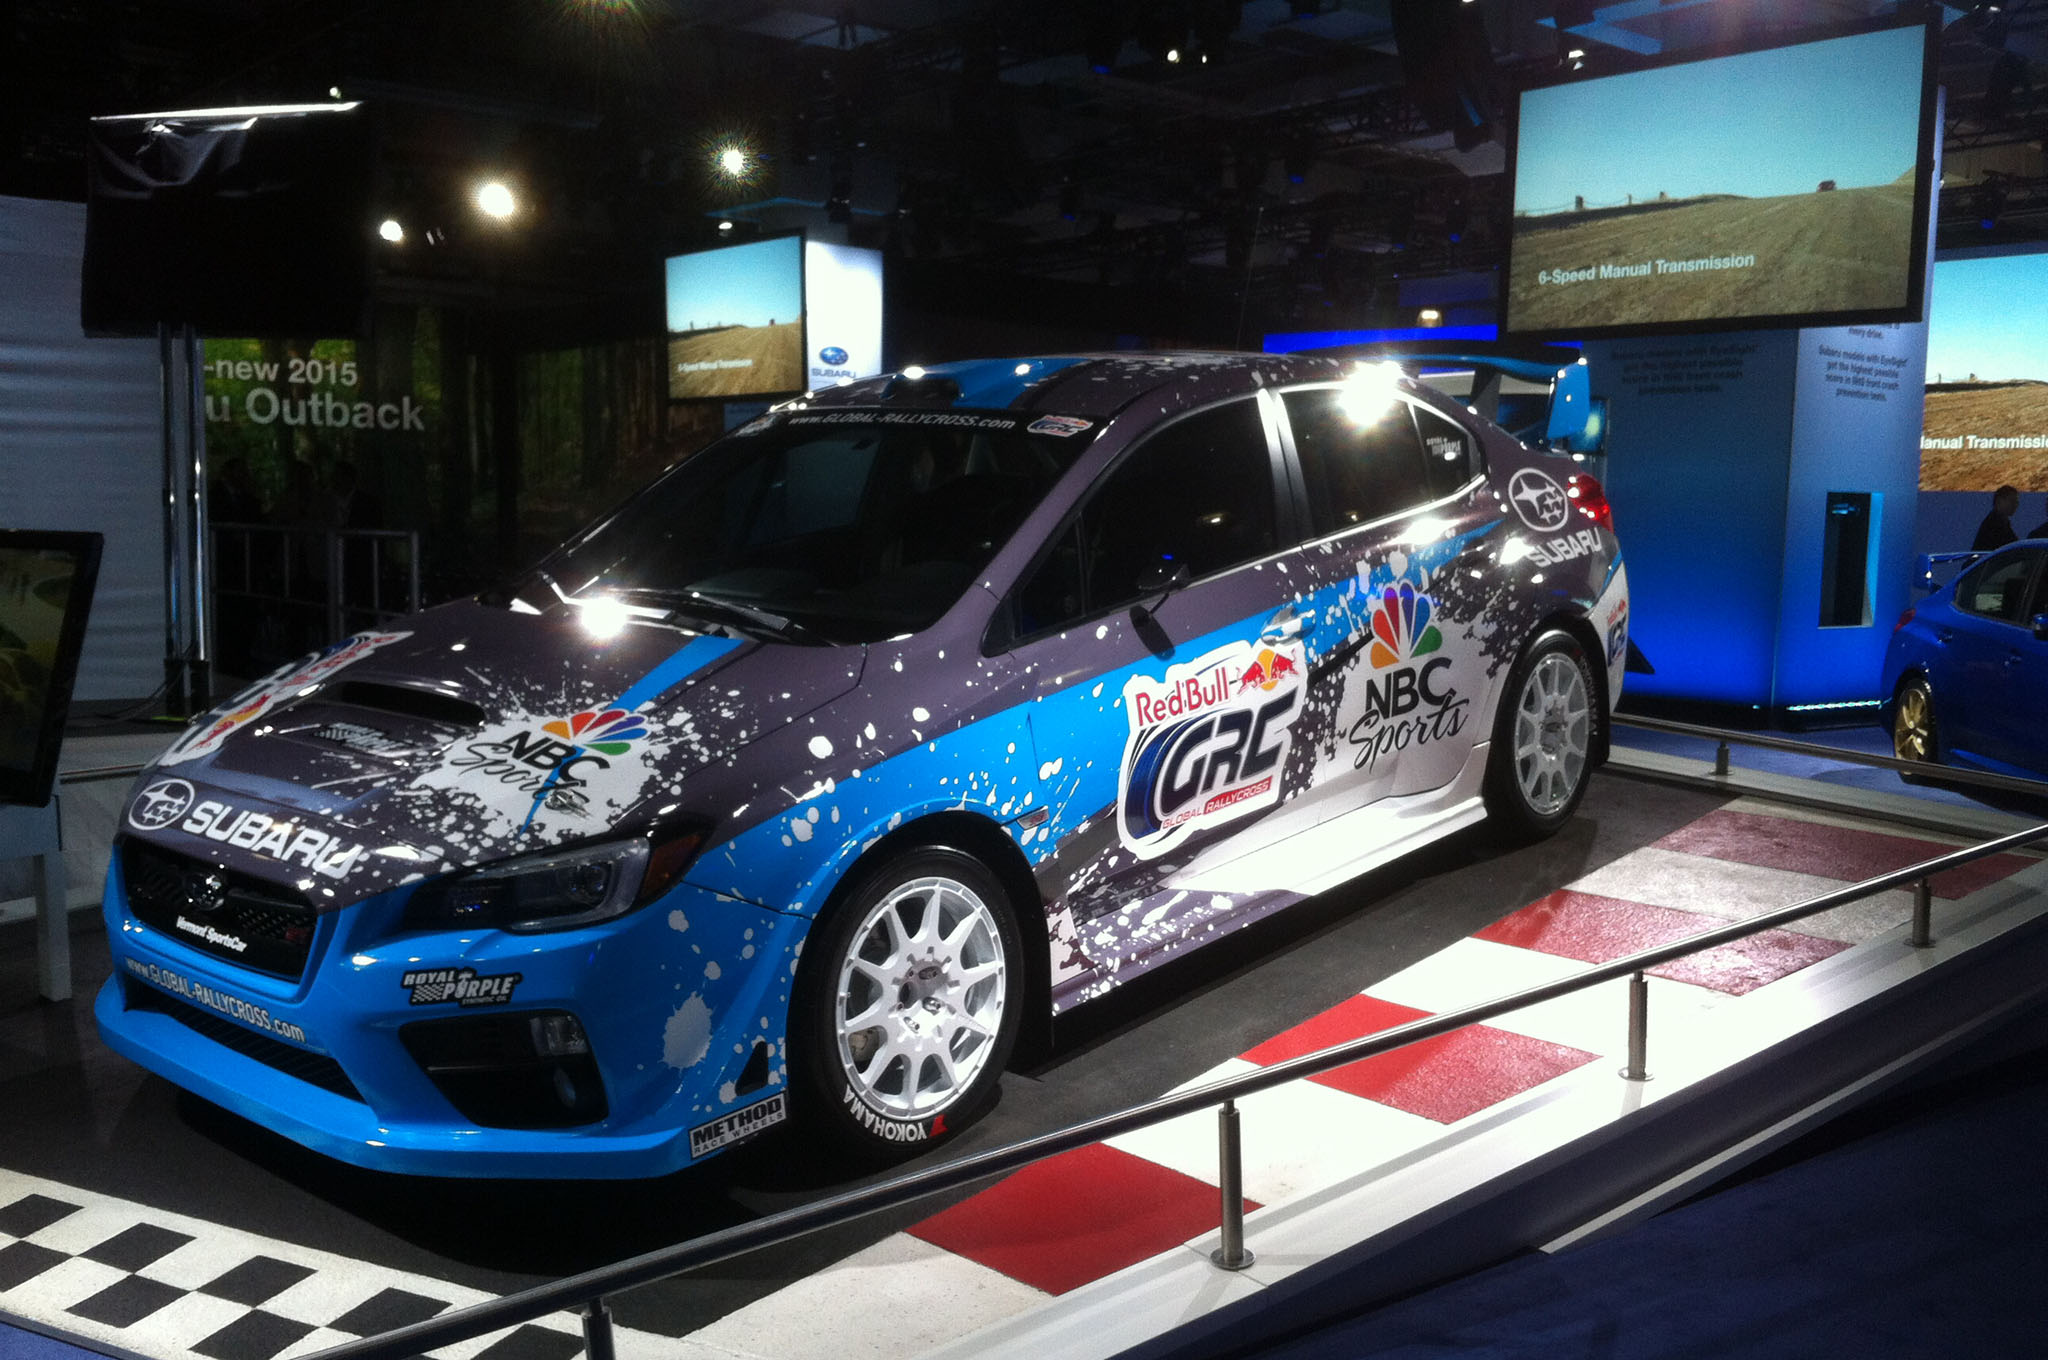 2015 Subaru WRX STI Rally Car Shown at New York Show – Automobile